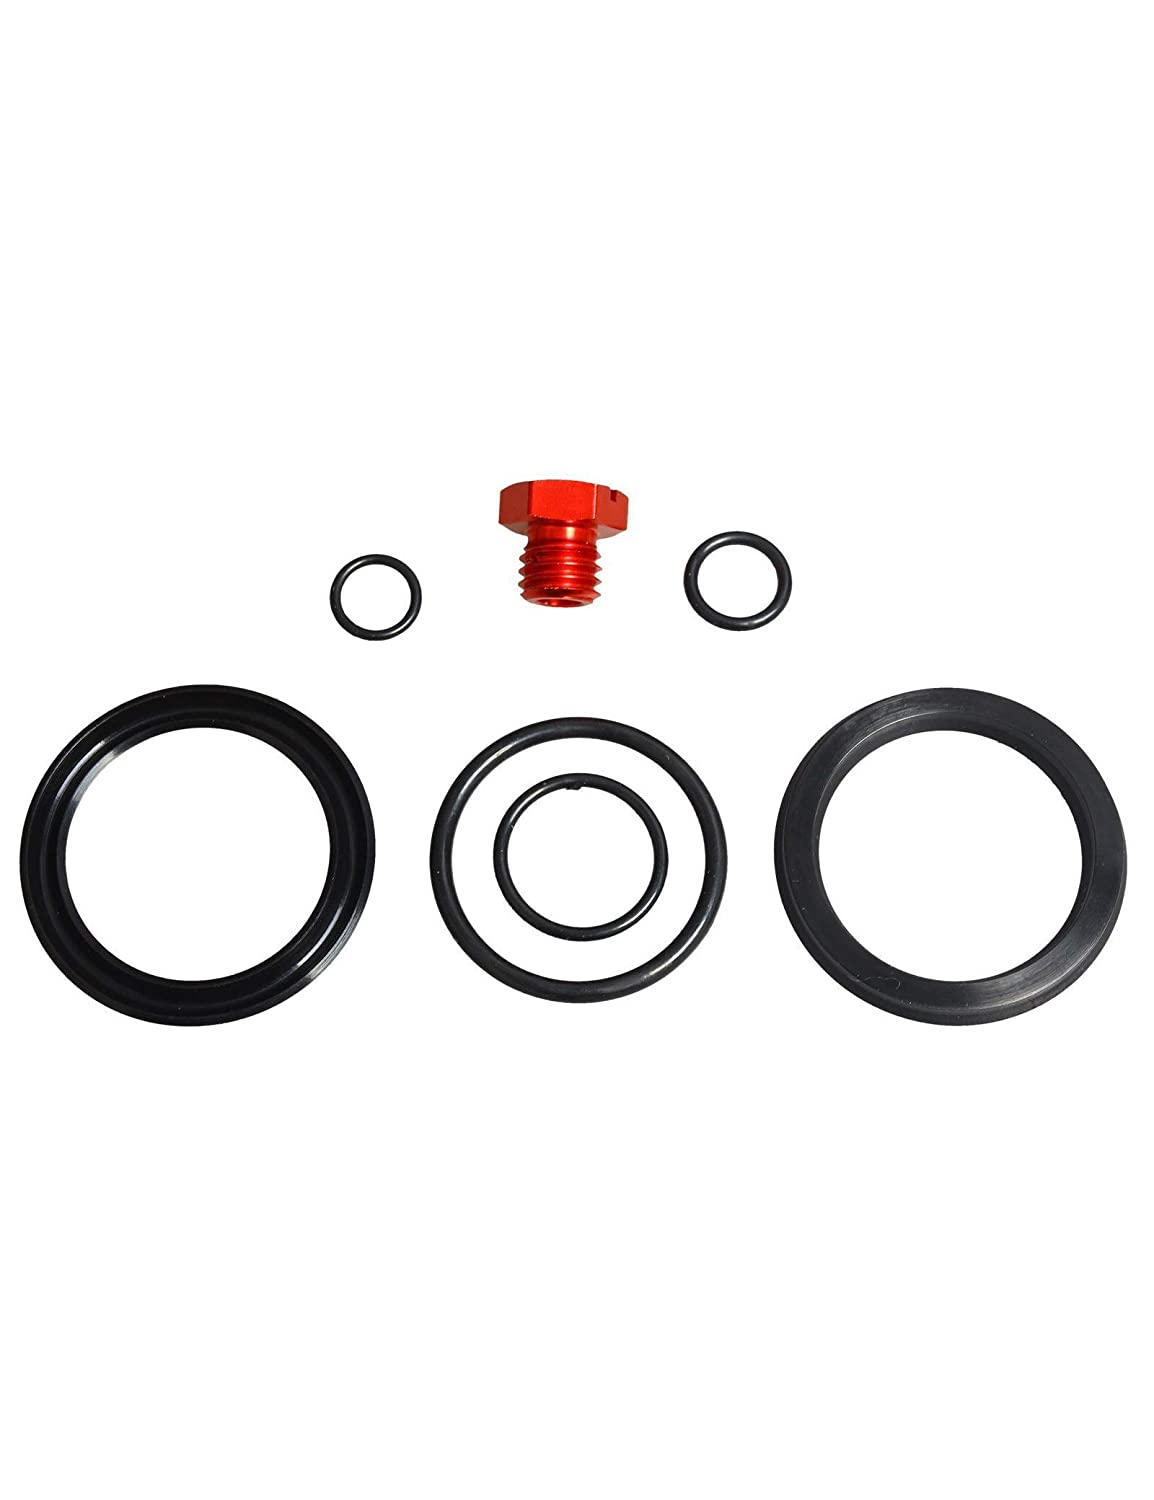 Red Fuel Filter Adapter Spacer Plate Bolts Bleeder Seal Viton O-Rings Kit Fit 2001-2016 Chevy 6.6L